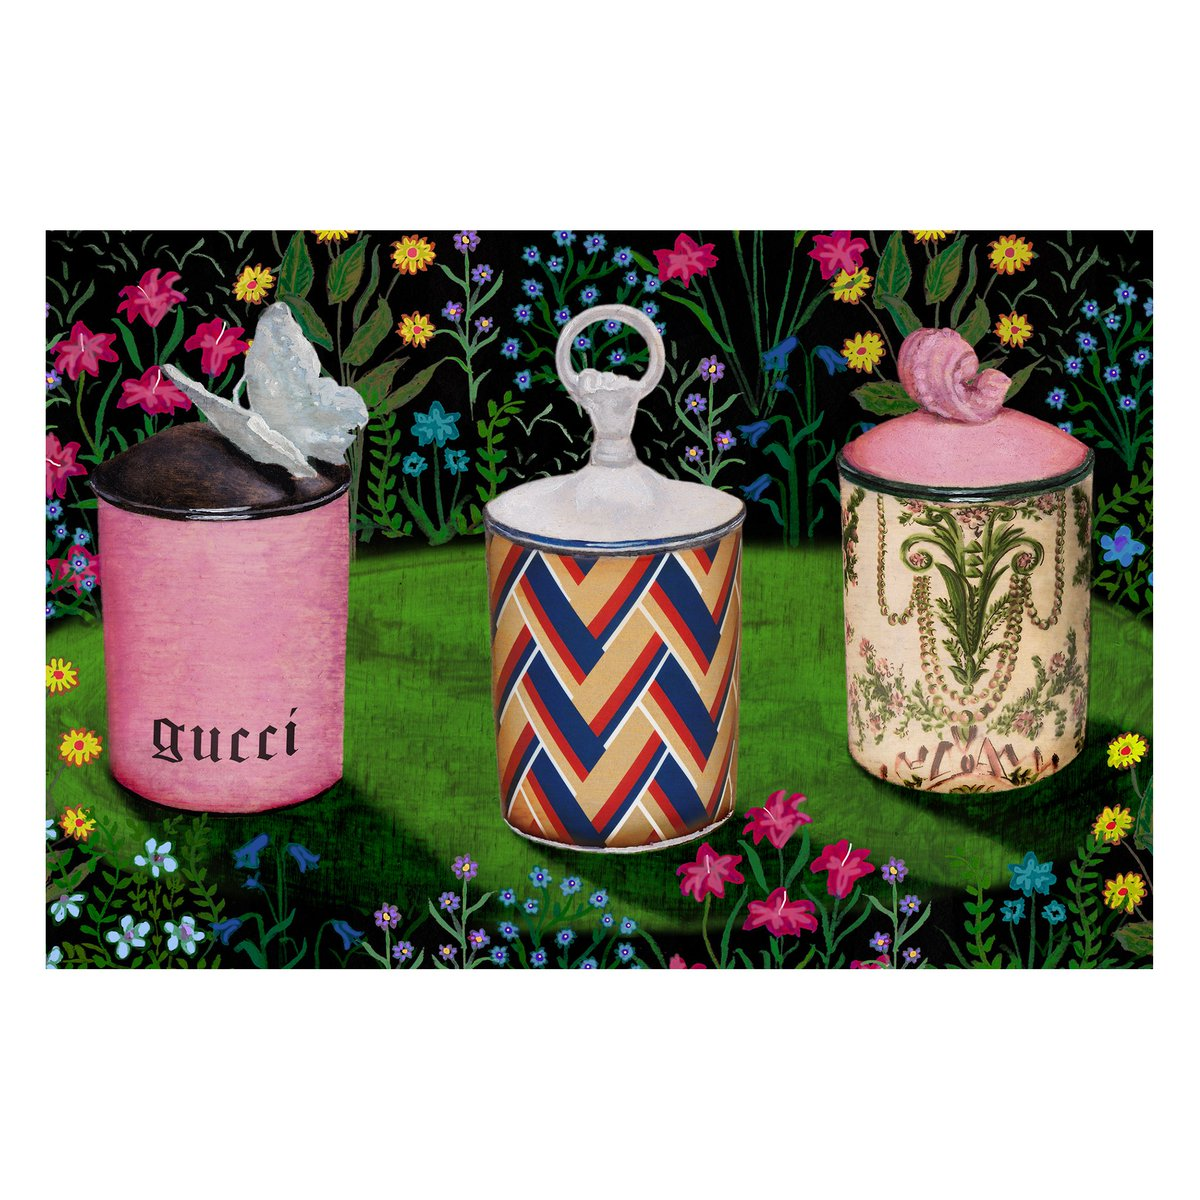 Gucci On Twitter A Glimpse At The Guccidcor Scented Candles